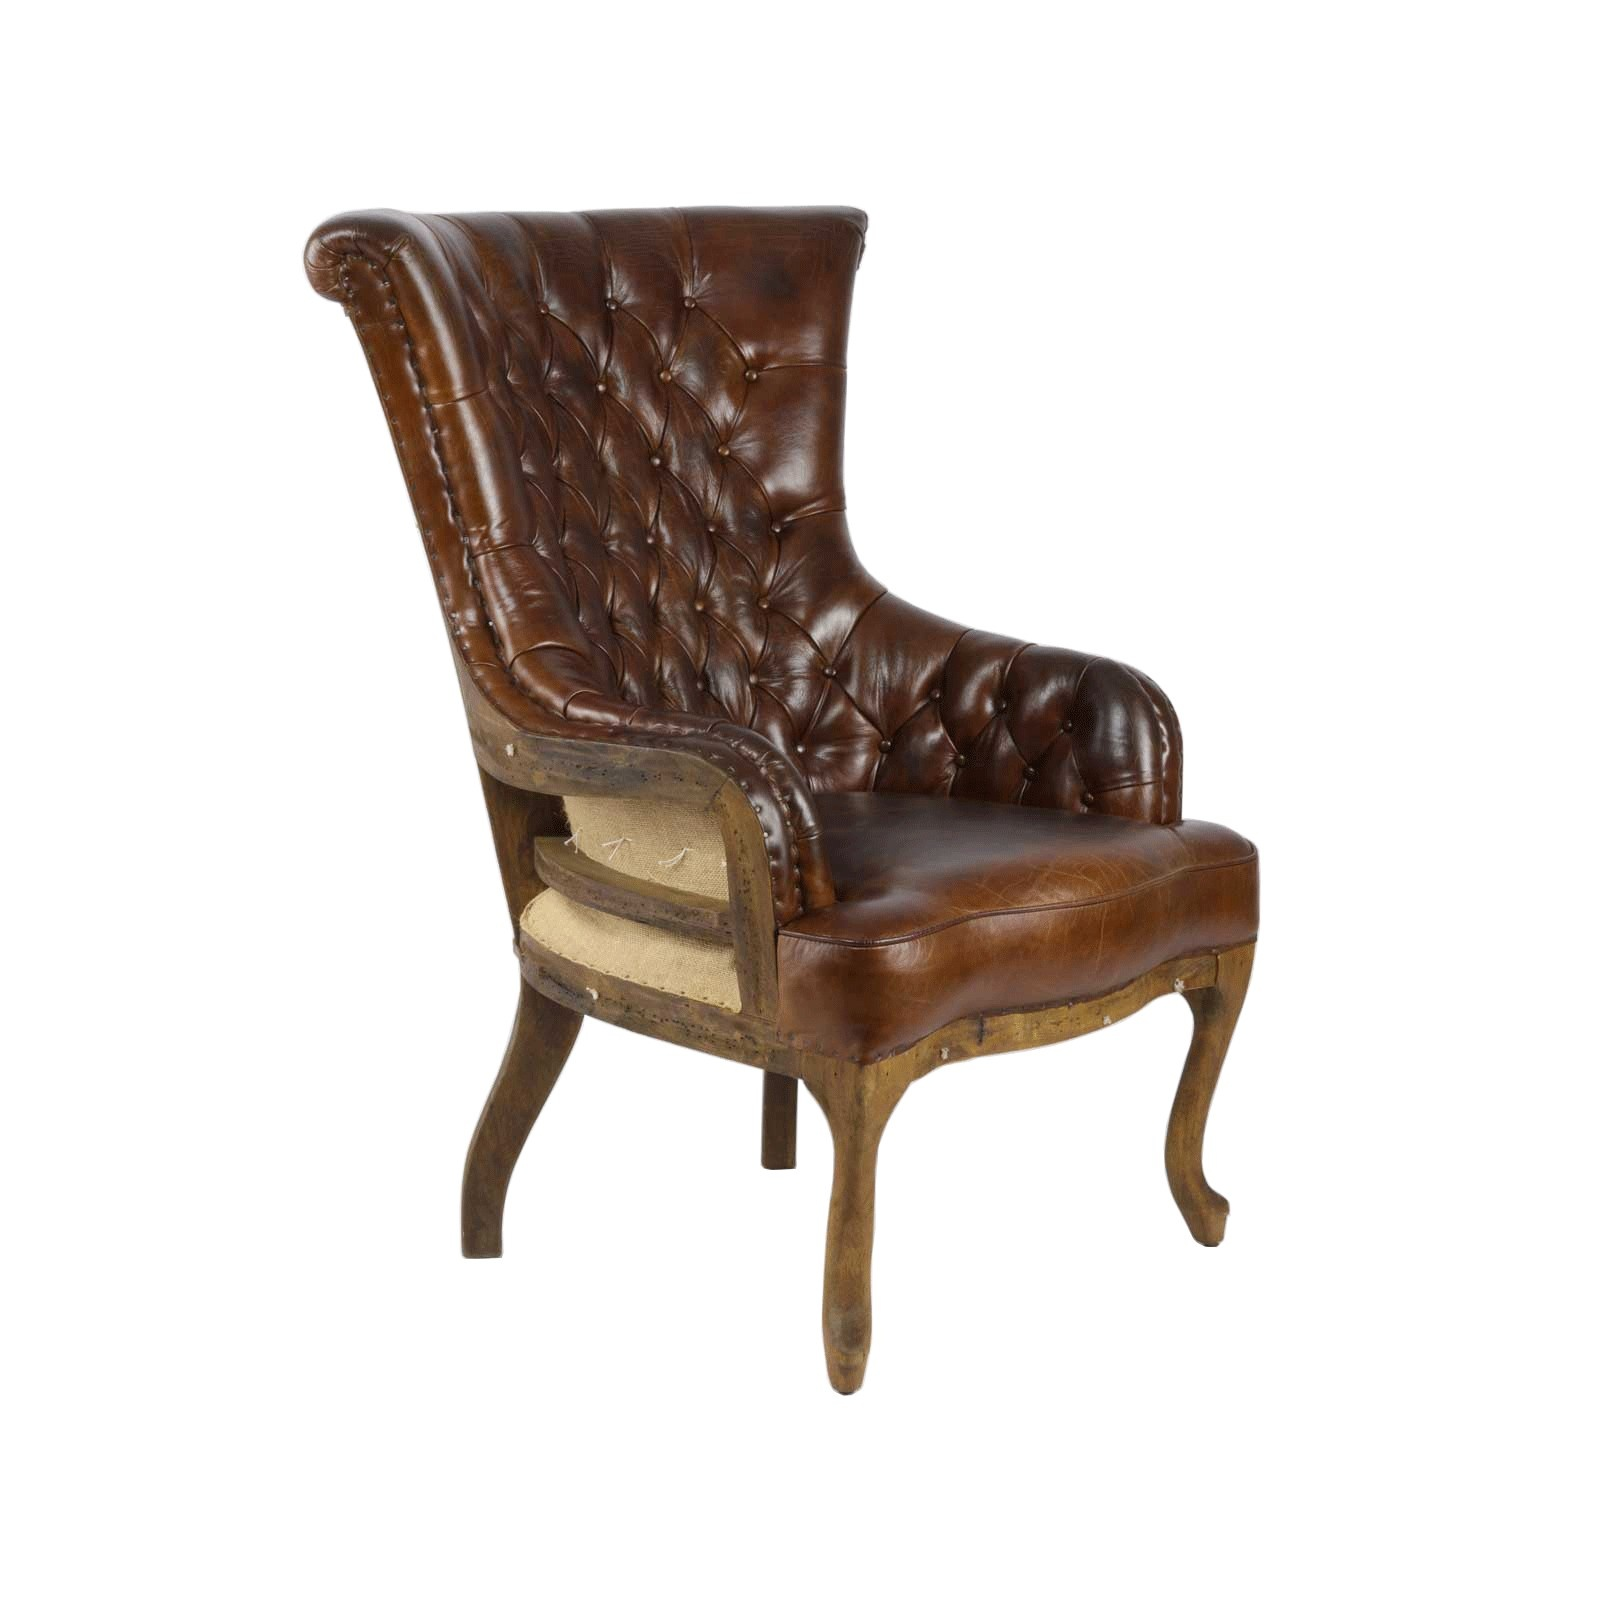 Sessel Chesterfield Französischer Chesterfield Sessel Echtleder Ledersessel